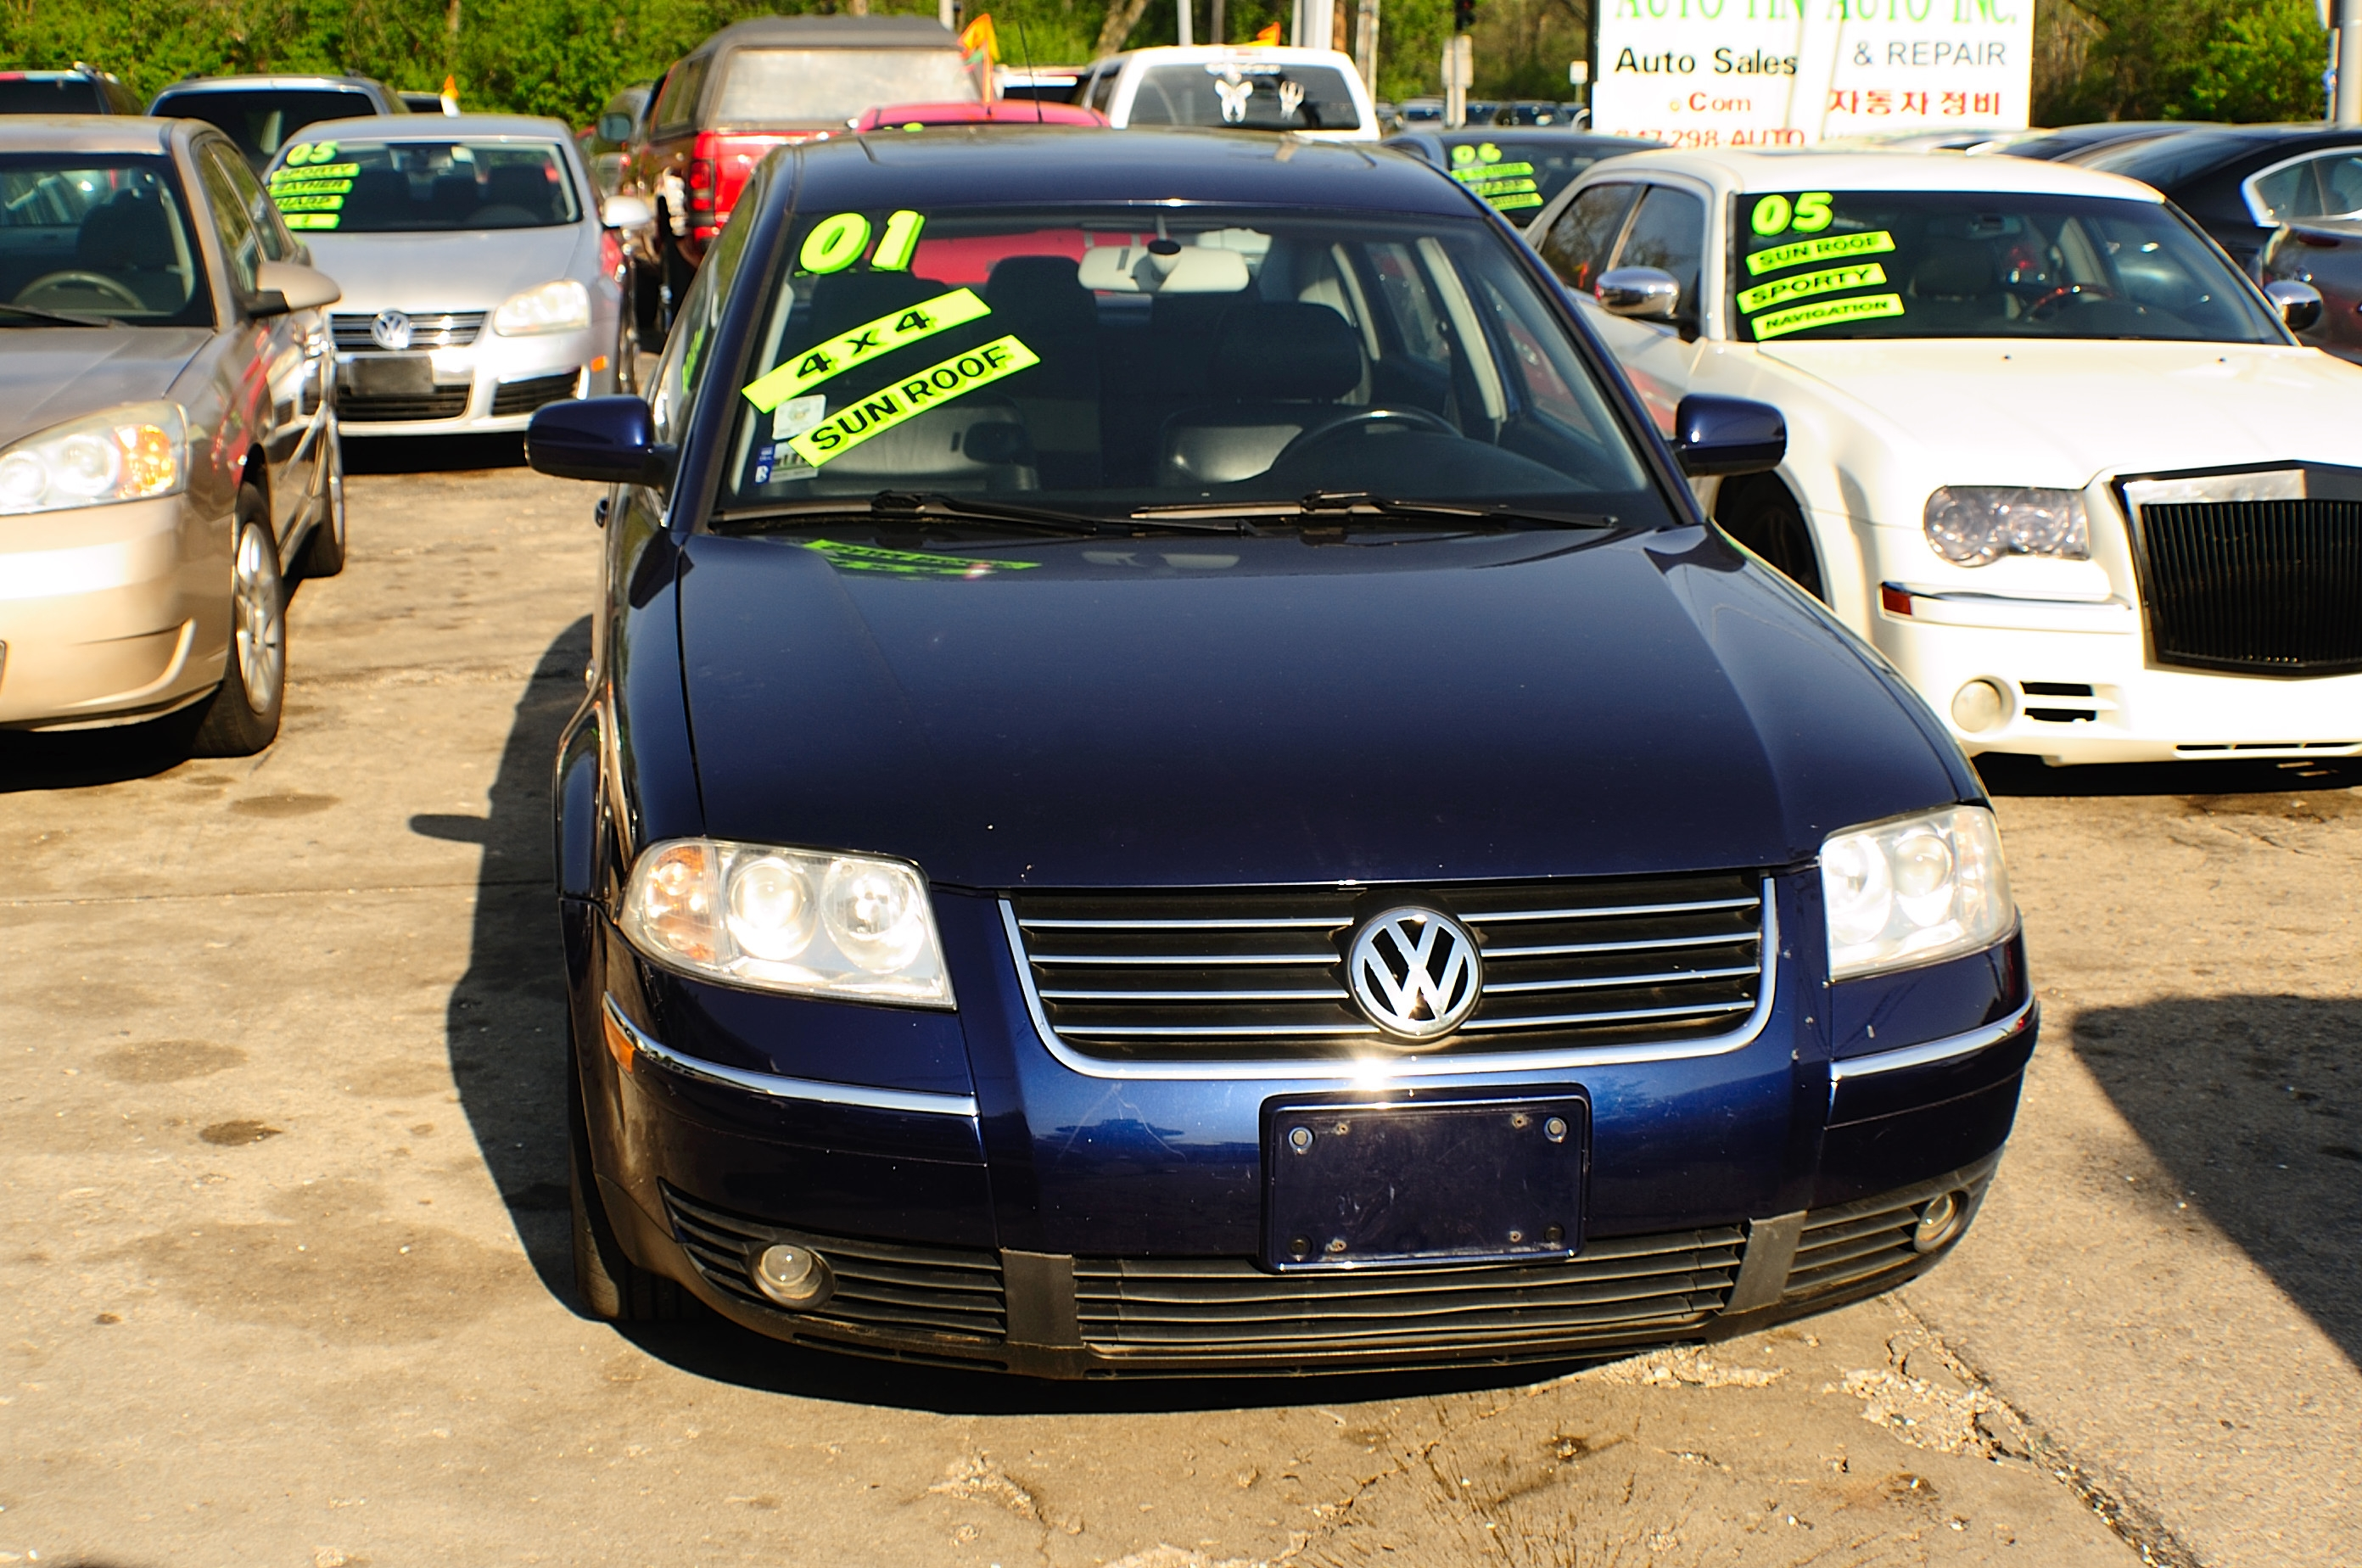 2001 Volkswagen Passat Blue Used Sedan car sale Buffalo Grove Bollingbrook Carol Stream